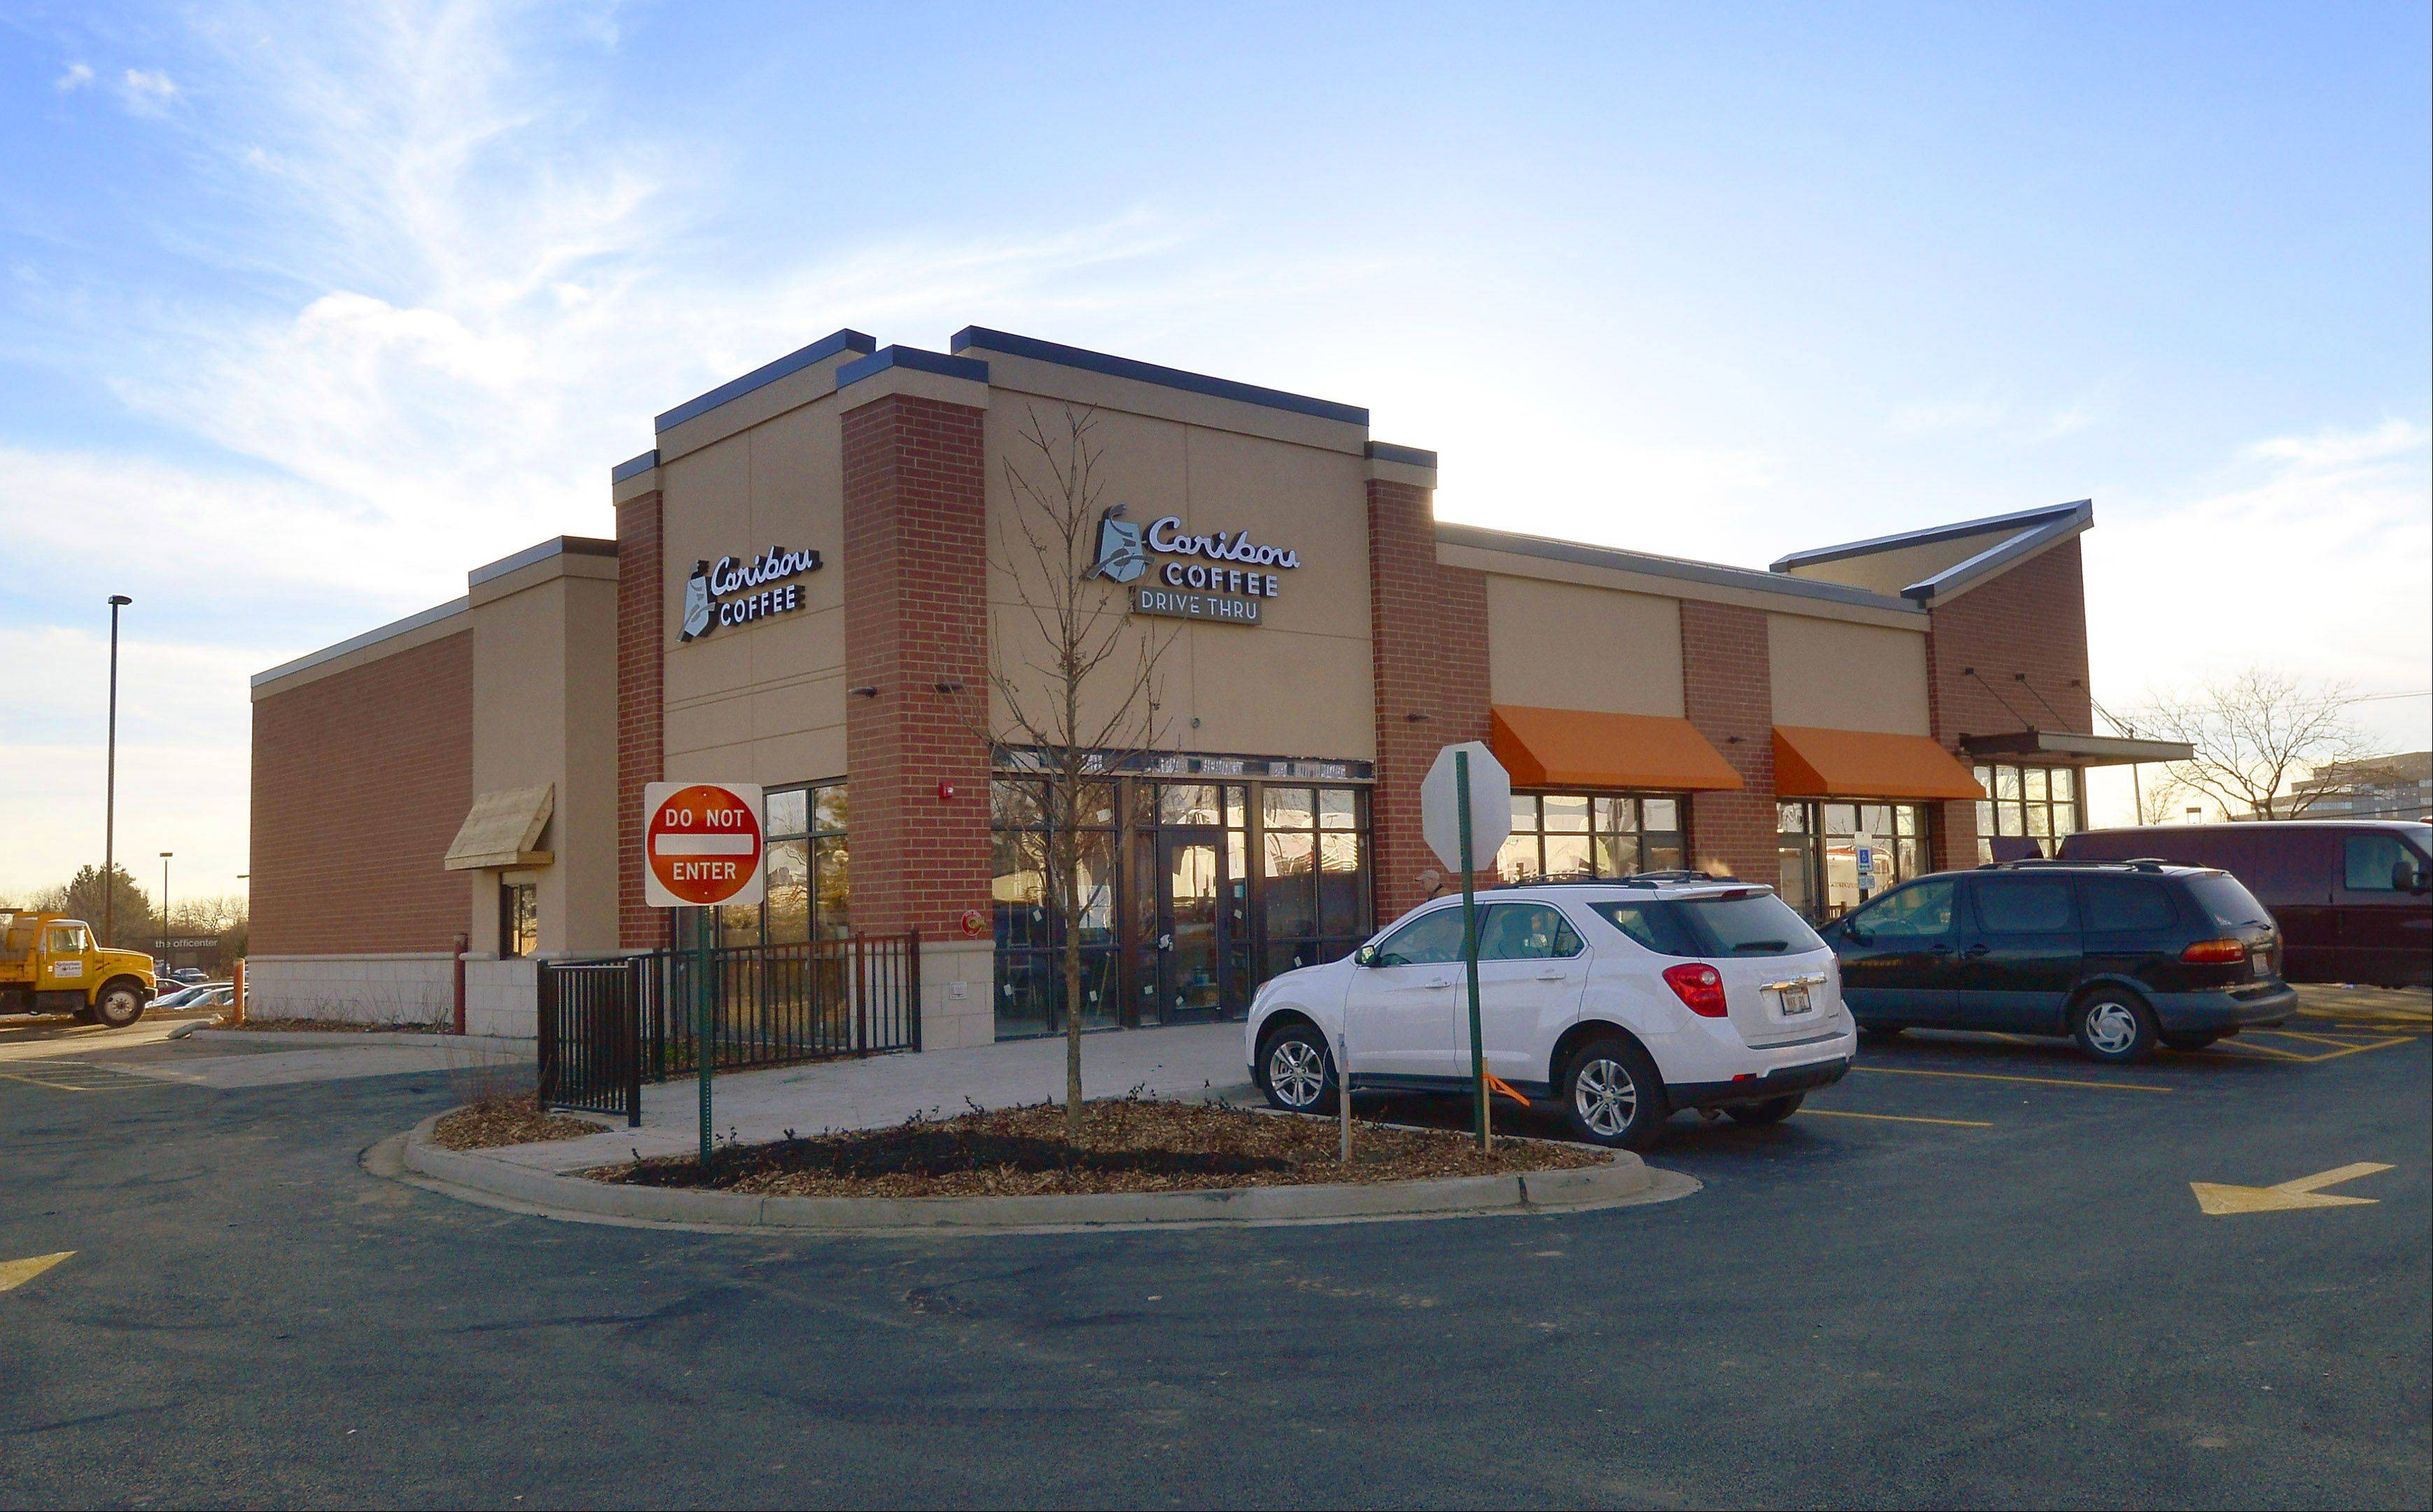 Caribou Coffee is one of the tenants in the new building at the former Le Titi de Paris restaurant location in Arlington Heights. The site also will feature a Supercuts and Qdoba Mexican Grill.